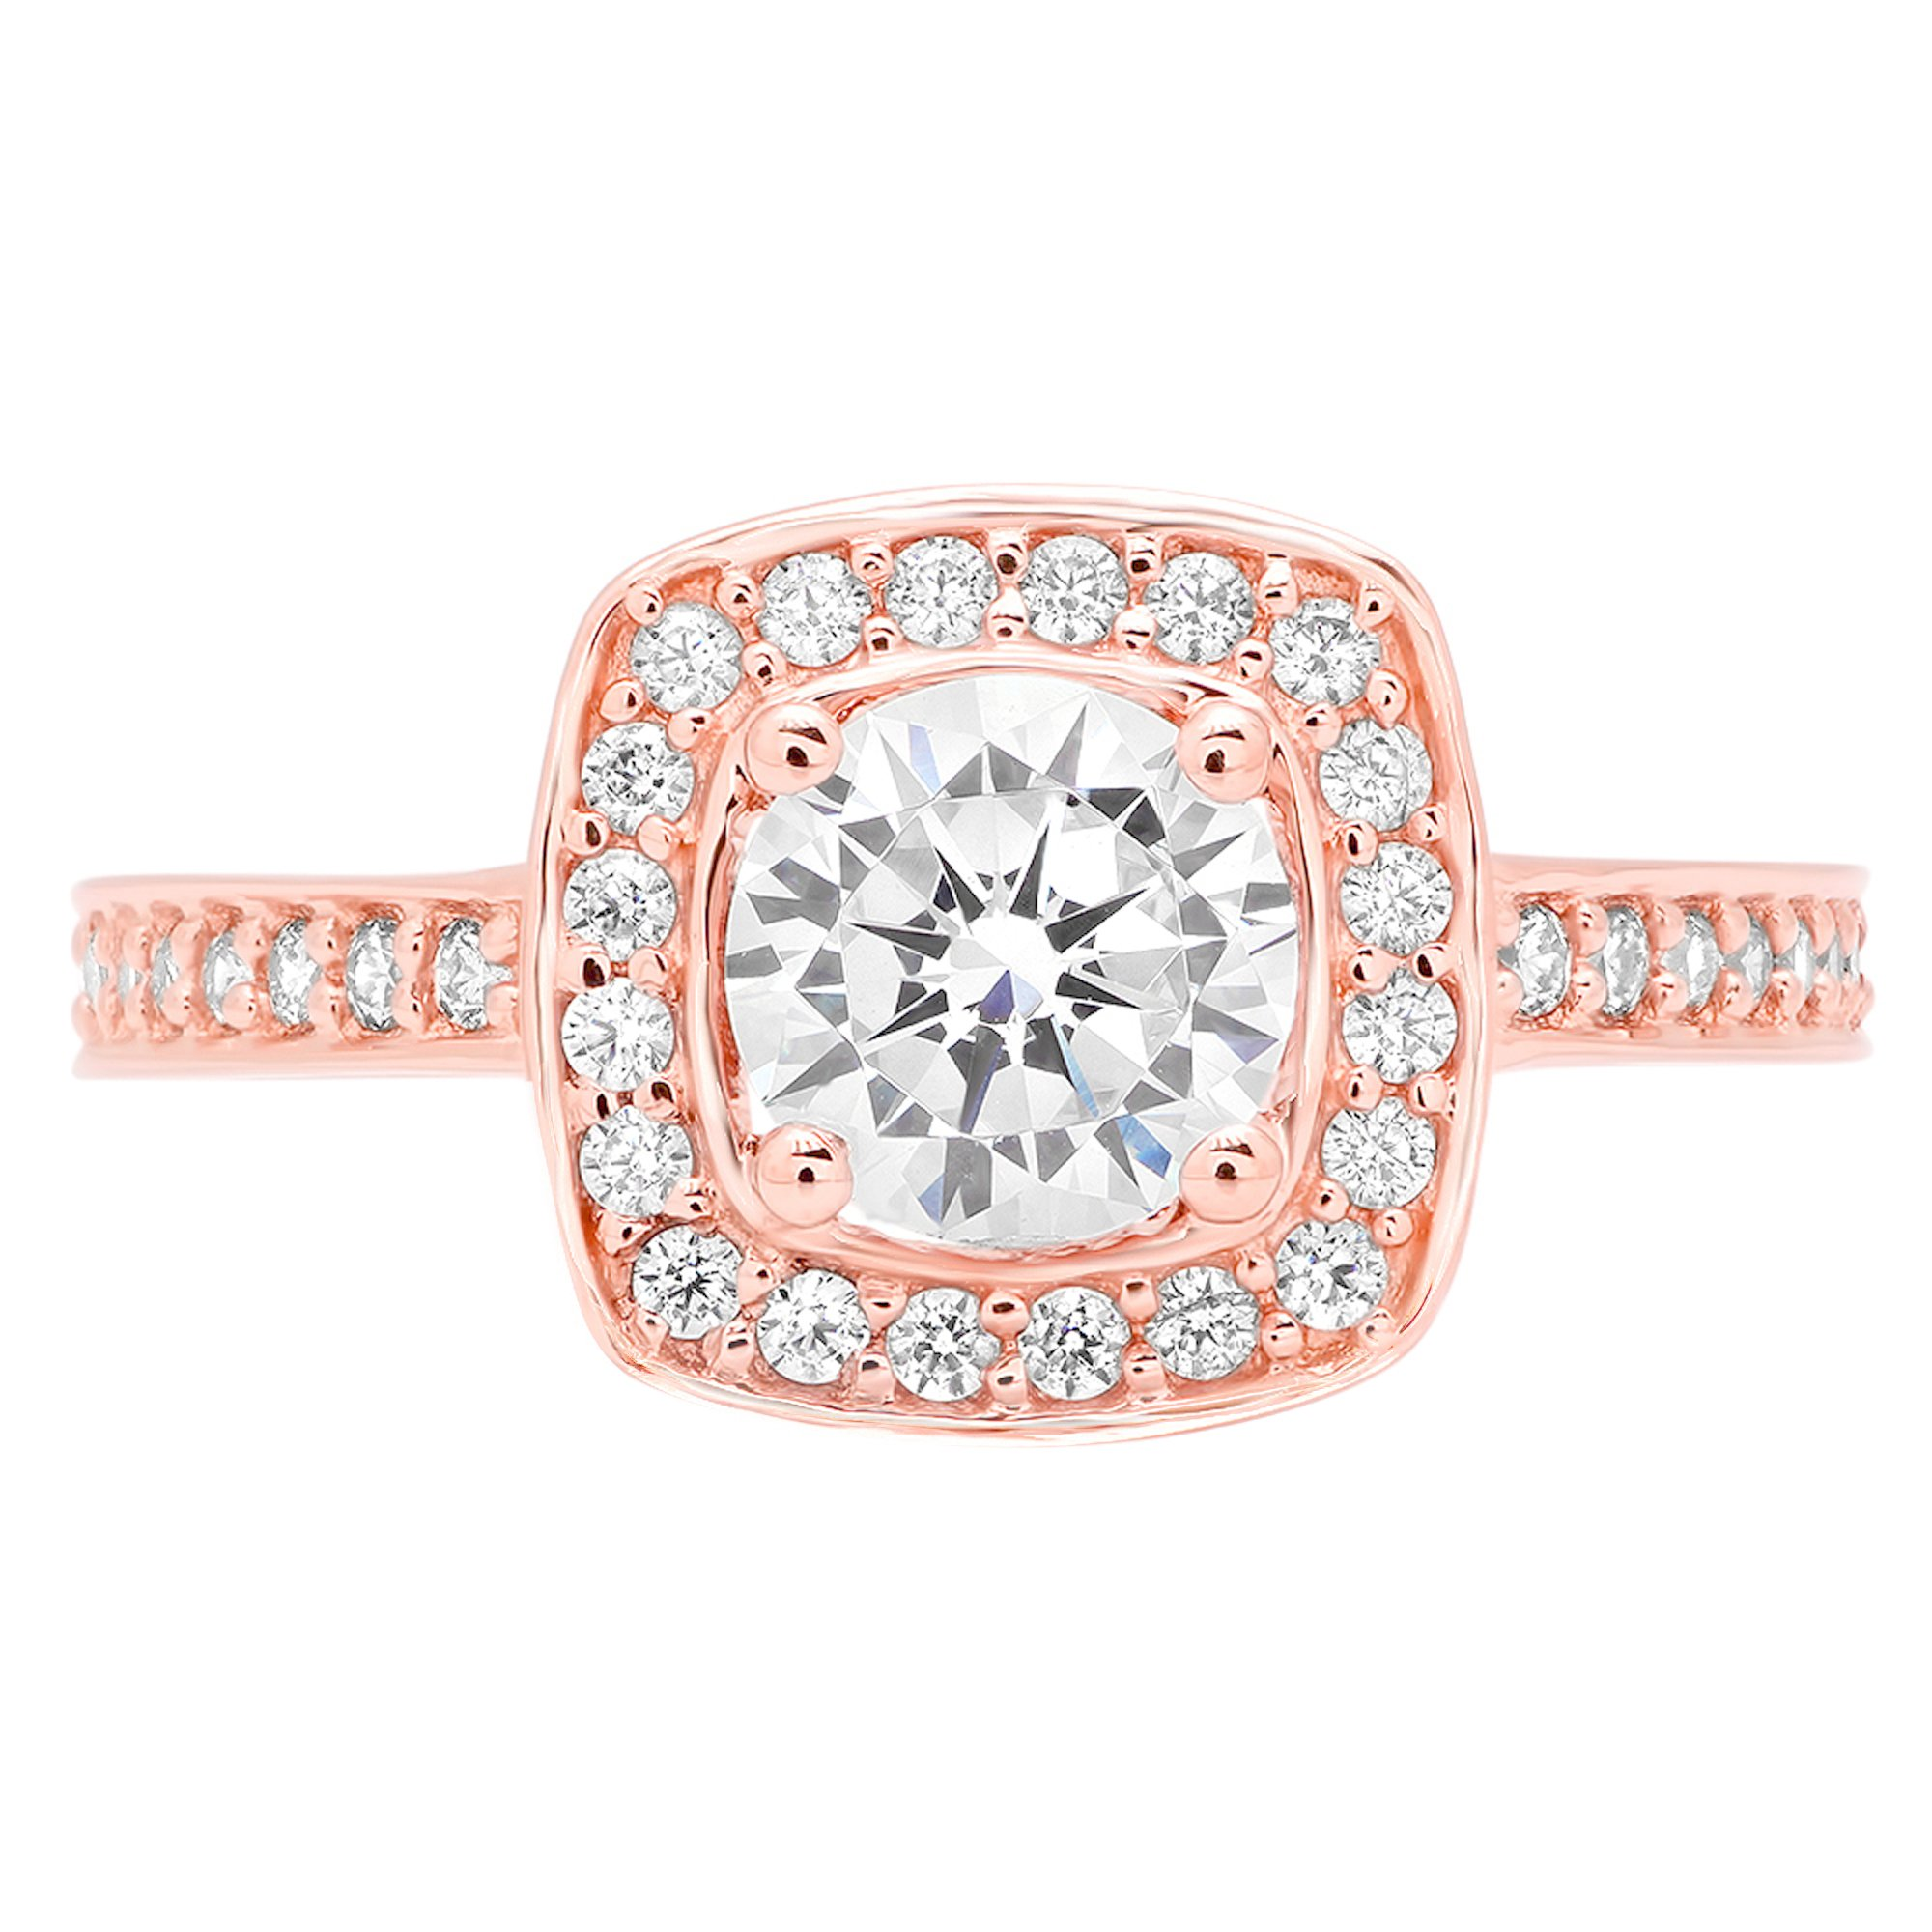 Brilliant Round Cut Solitaire Halo Engagement Statement Anniversary Wedding Bridal Promise Ring in Solid 14k Rose Gold for Women 1.16 ct, 9.5